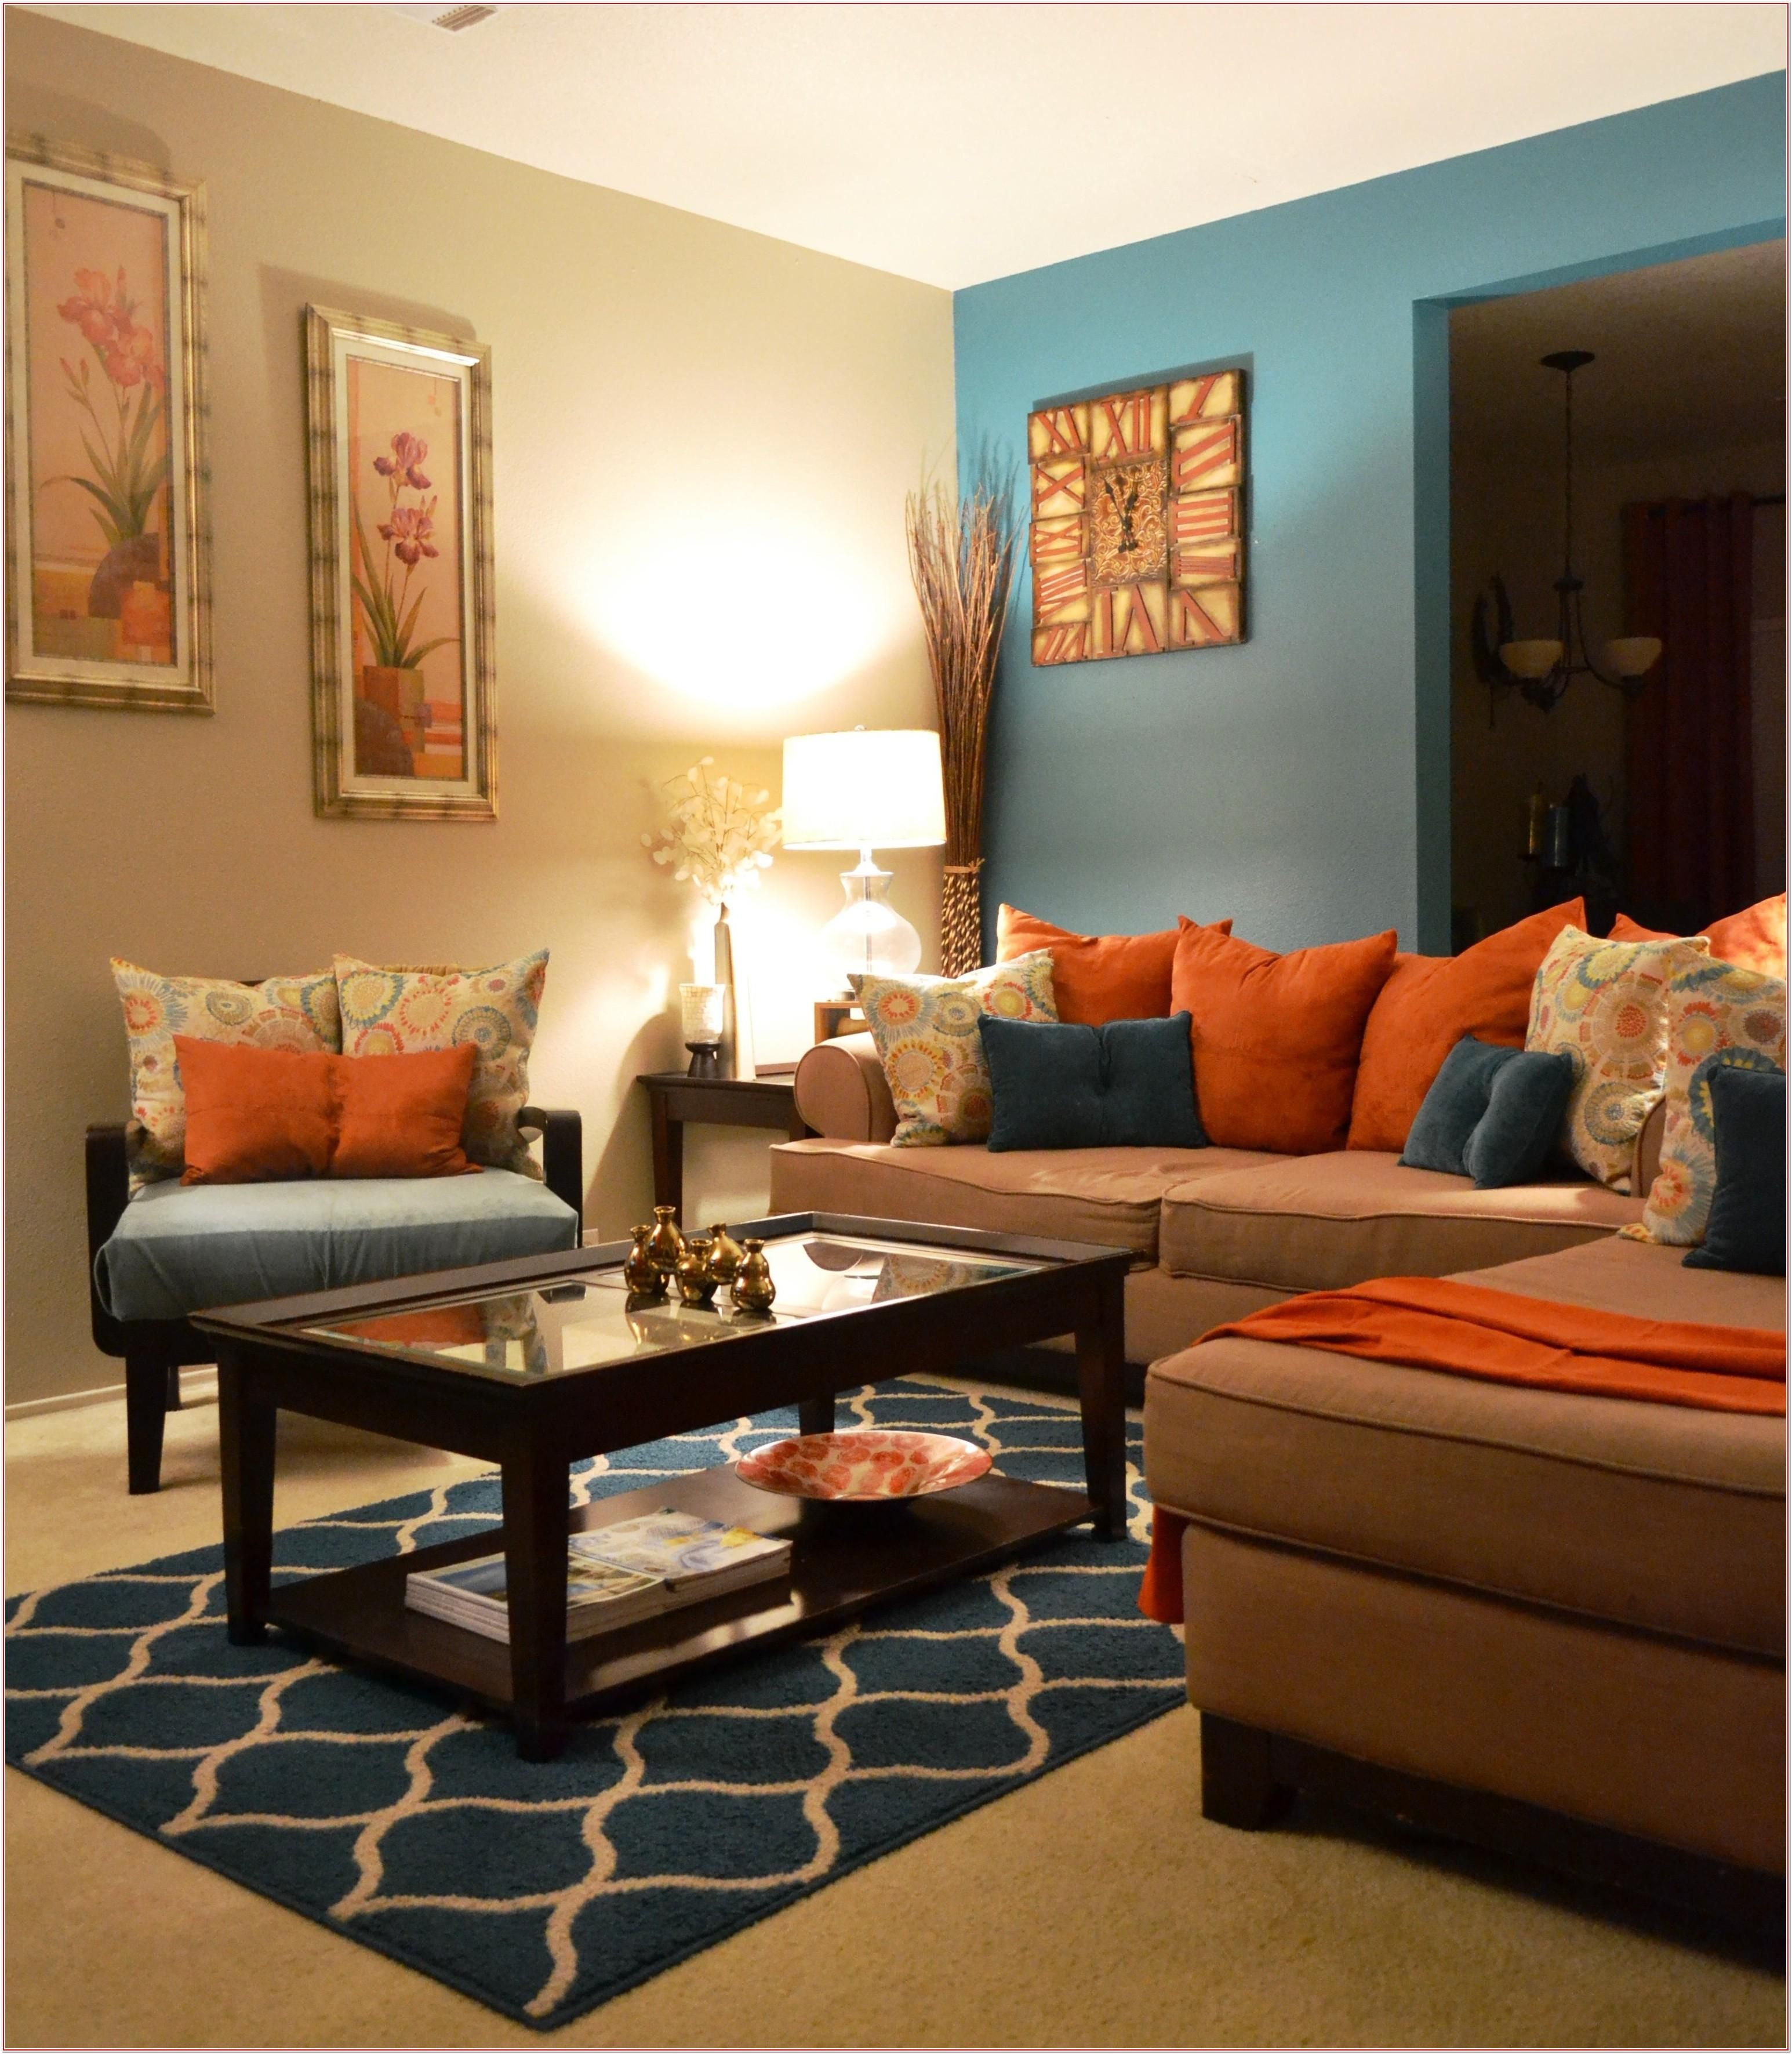 Teal And Orange Living Room Decor Ideas In 2020 Teal Living Rooms Brown Living Room Decor Living Room Turquoise #teal #living #room #decor #ideas